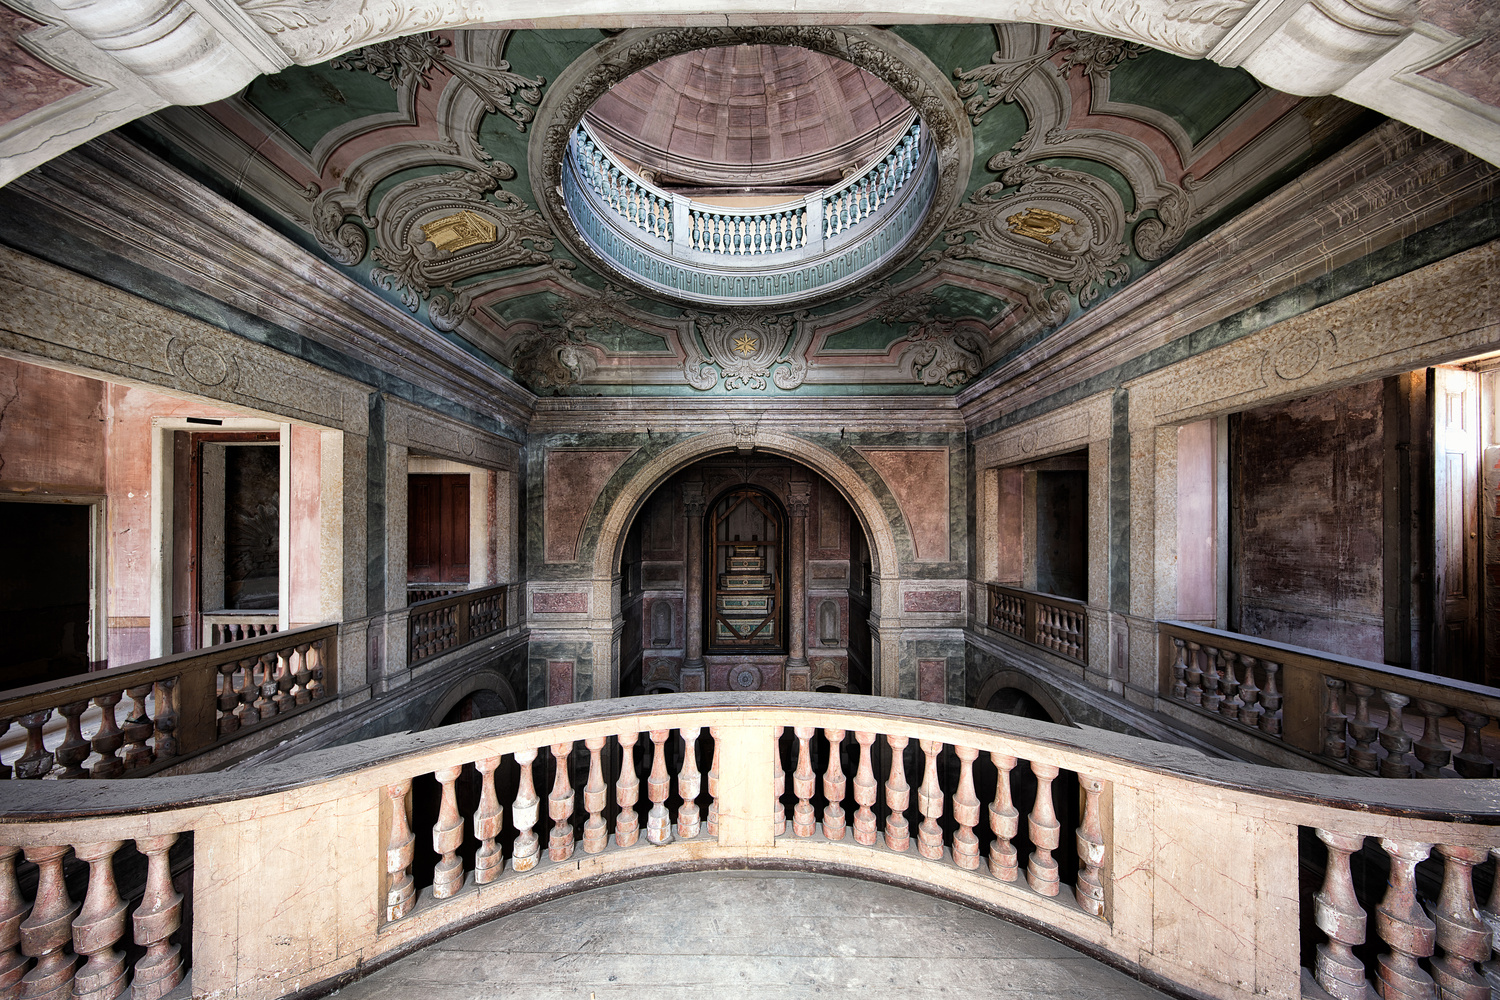 Fora dos limites   Under the rotunda by James Kerwin